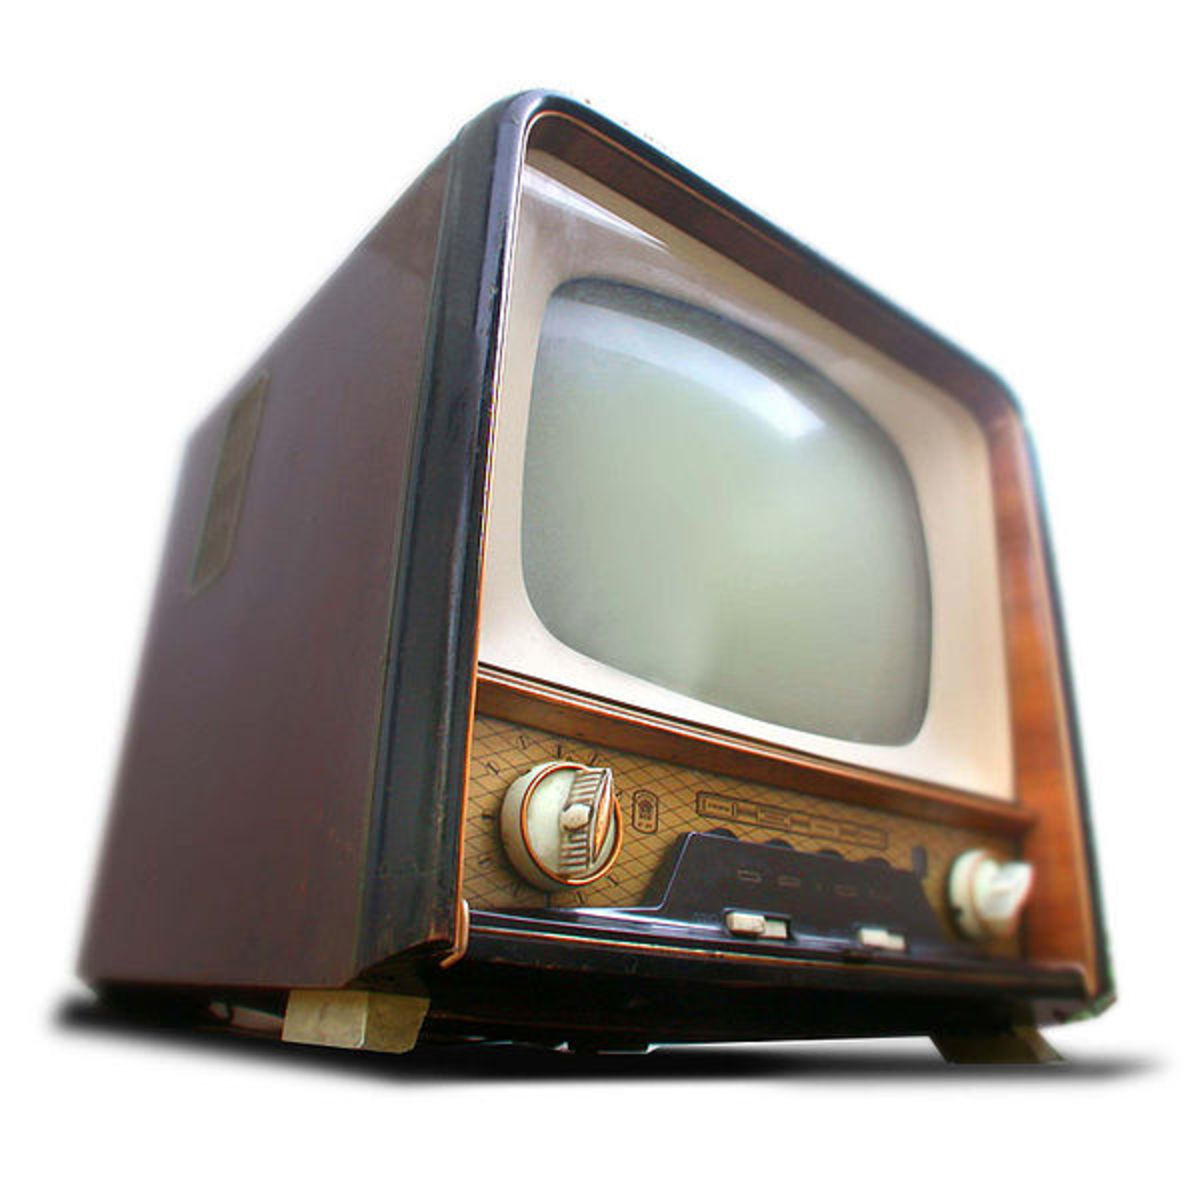 Images and sounds that have taken over television sets.